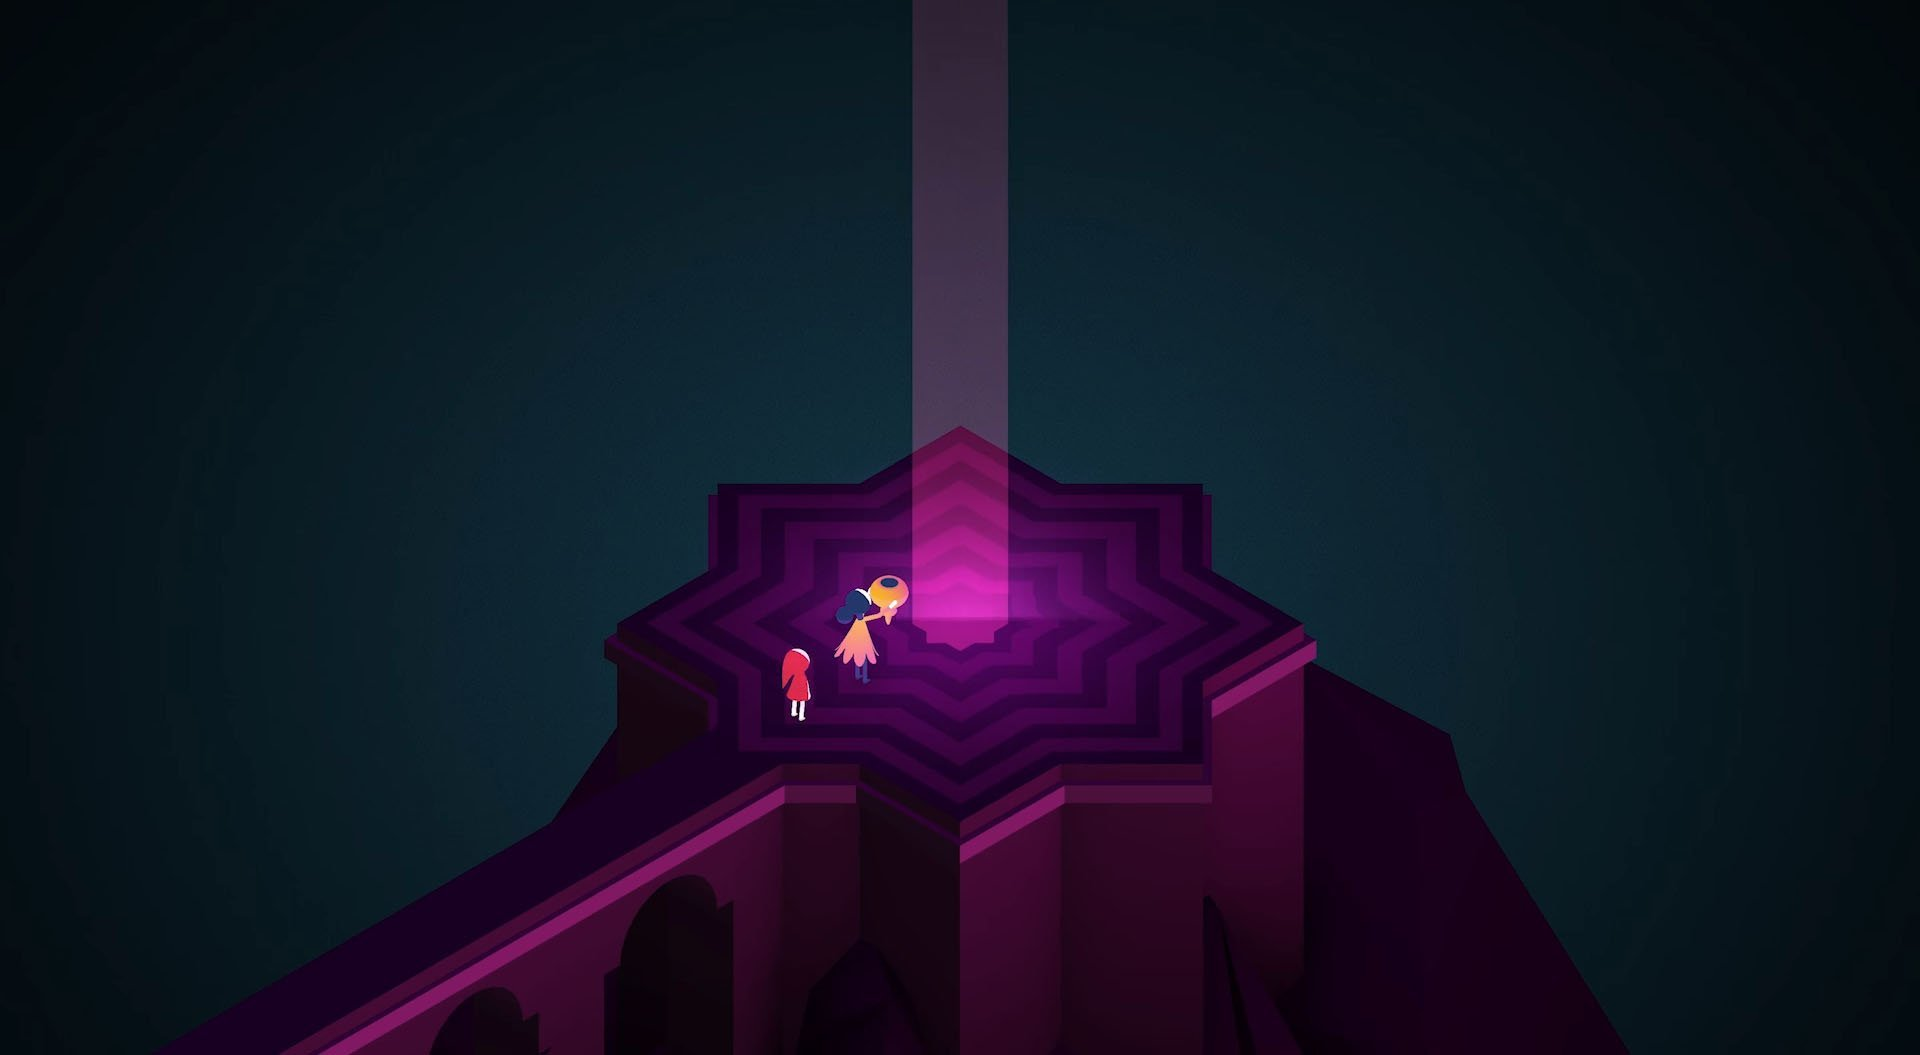 Monument Valley 2 : le magnifique puzzle-game en promotion à 1 euro sur le Play Store